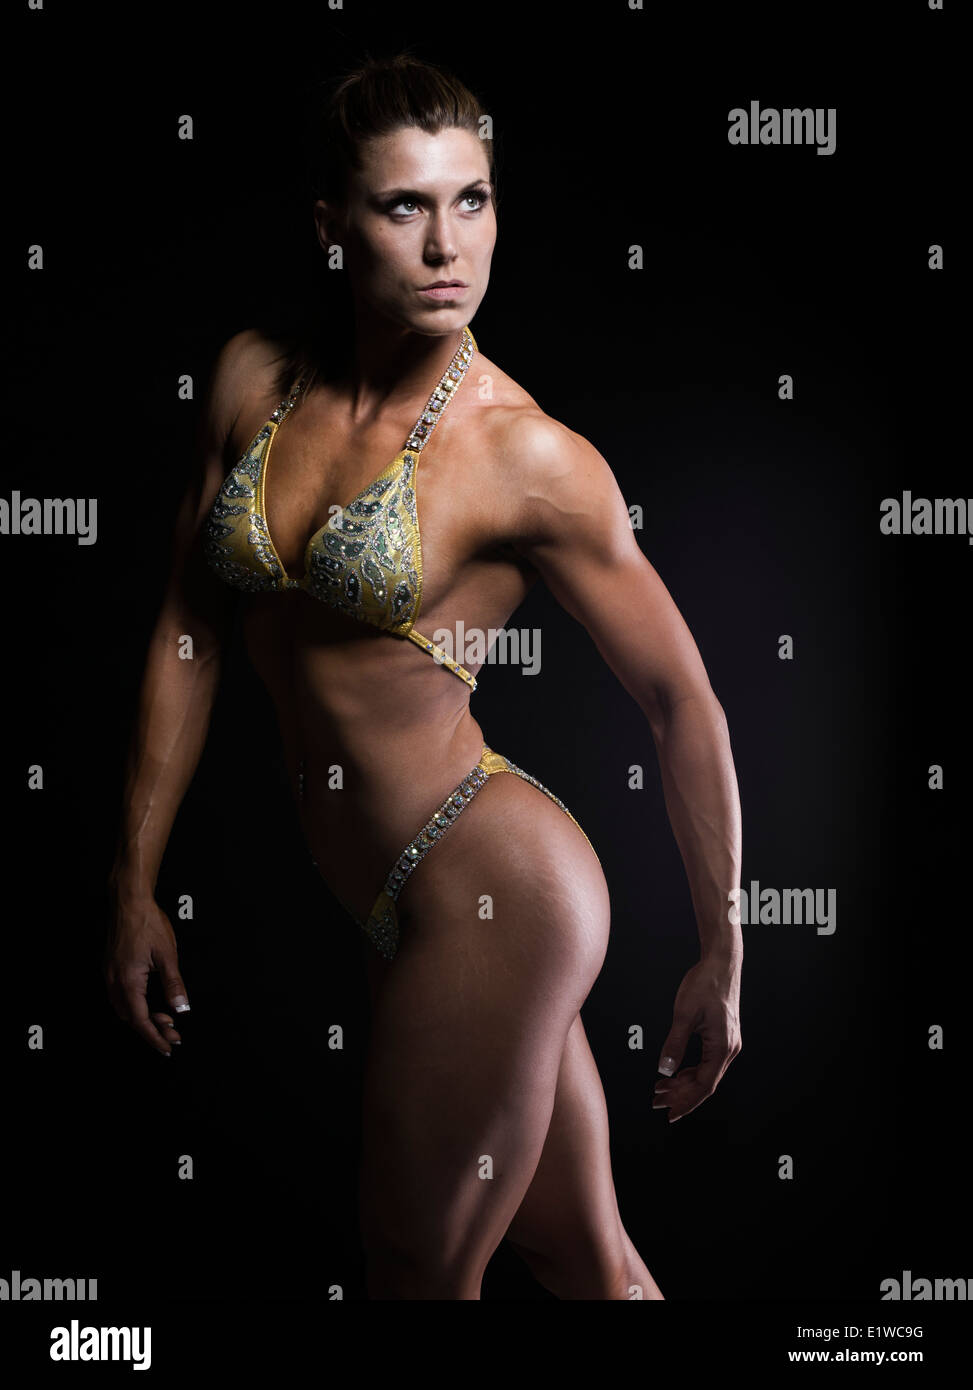 Tonico muscolare athletic donna - corpo femmina builder bodybuilder modello fitness Immagini Stock